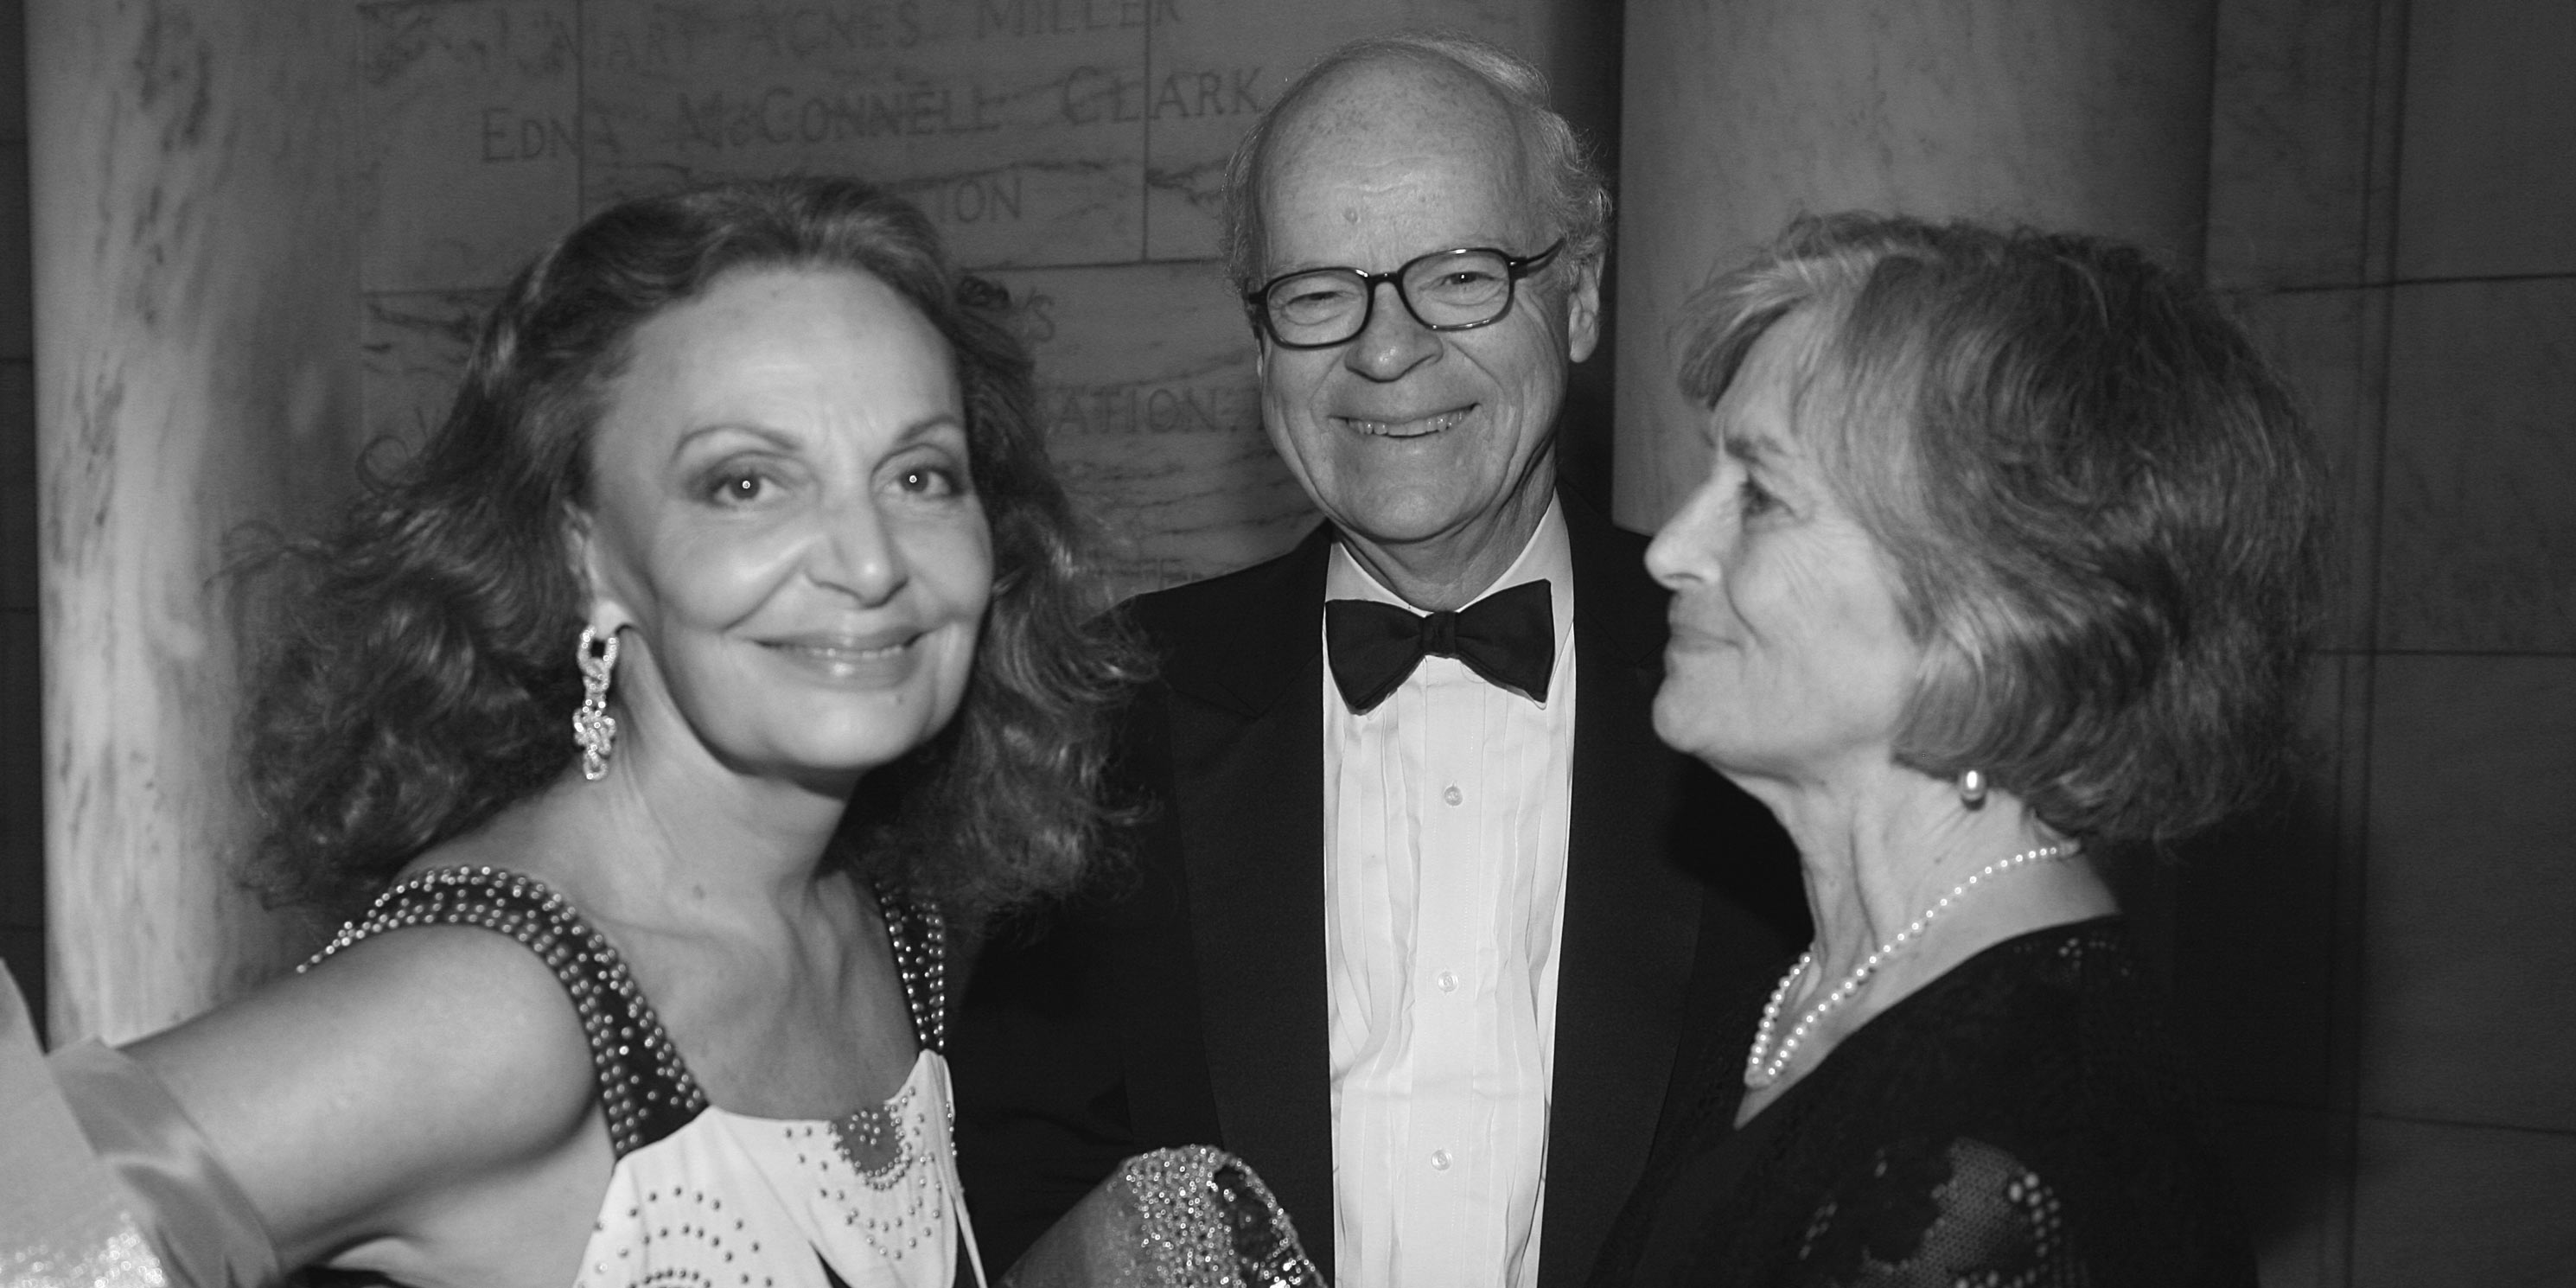 Diane von Furstenberg, Robert B. Tierney, and Carolyn Wakeman at the 2011 Gala